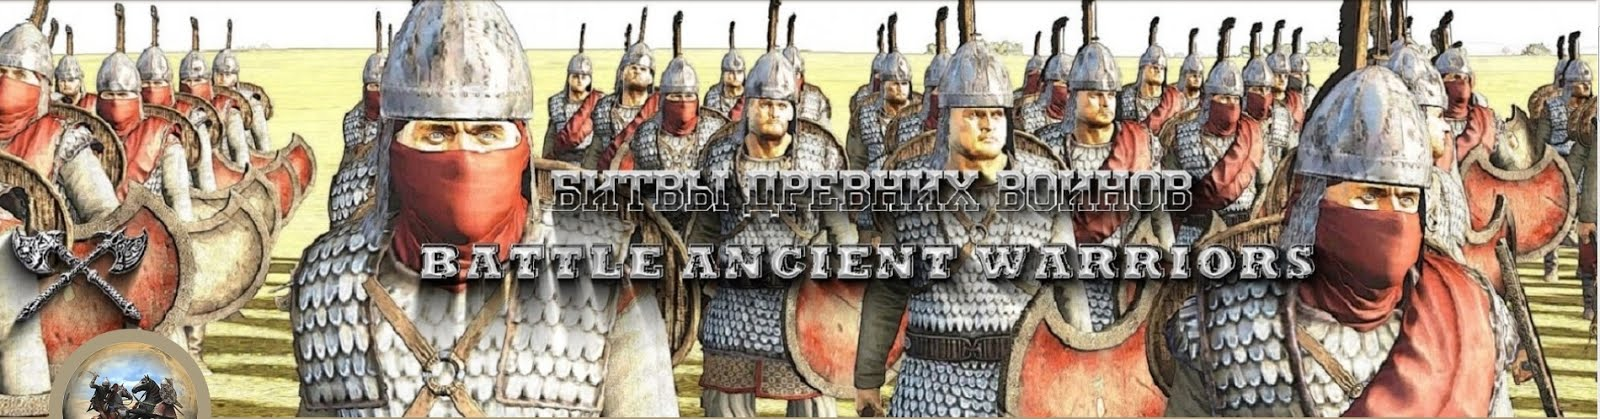 Battle ancient warriors